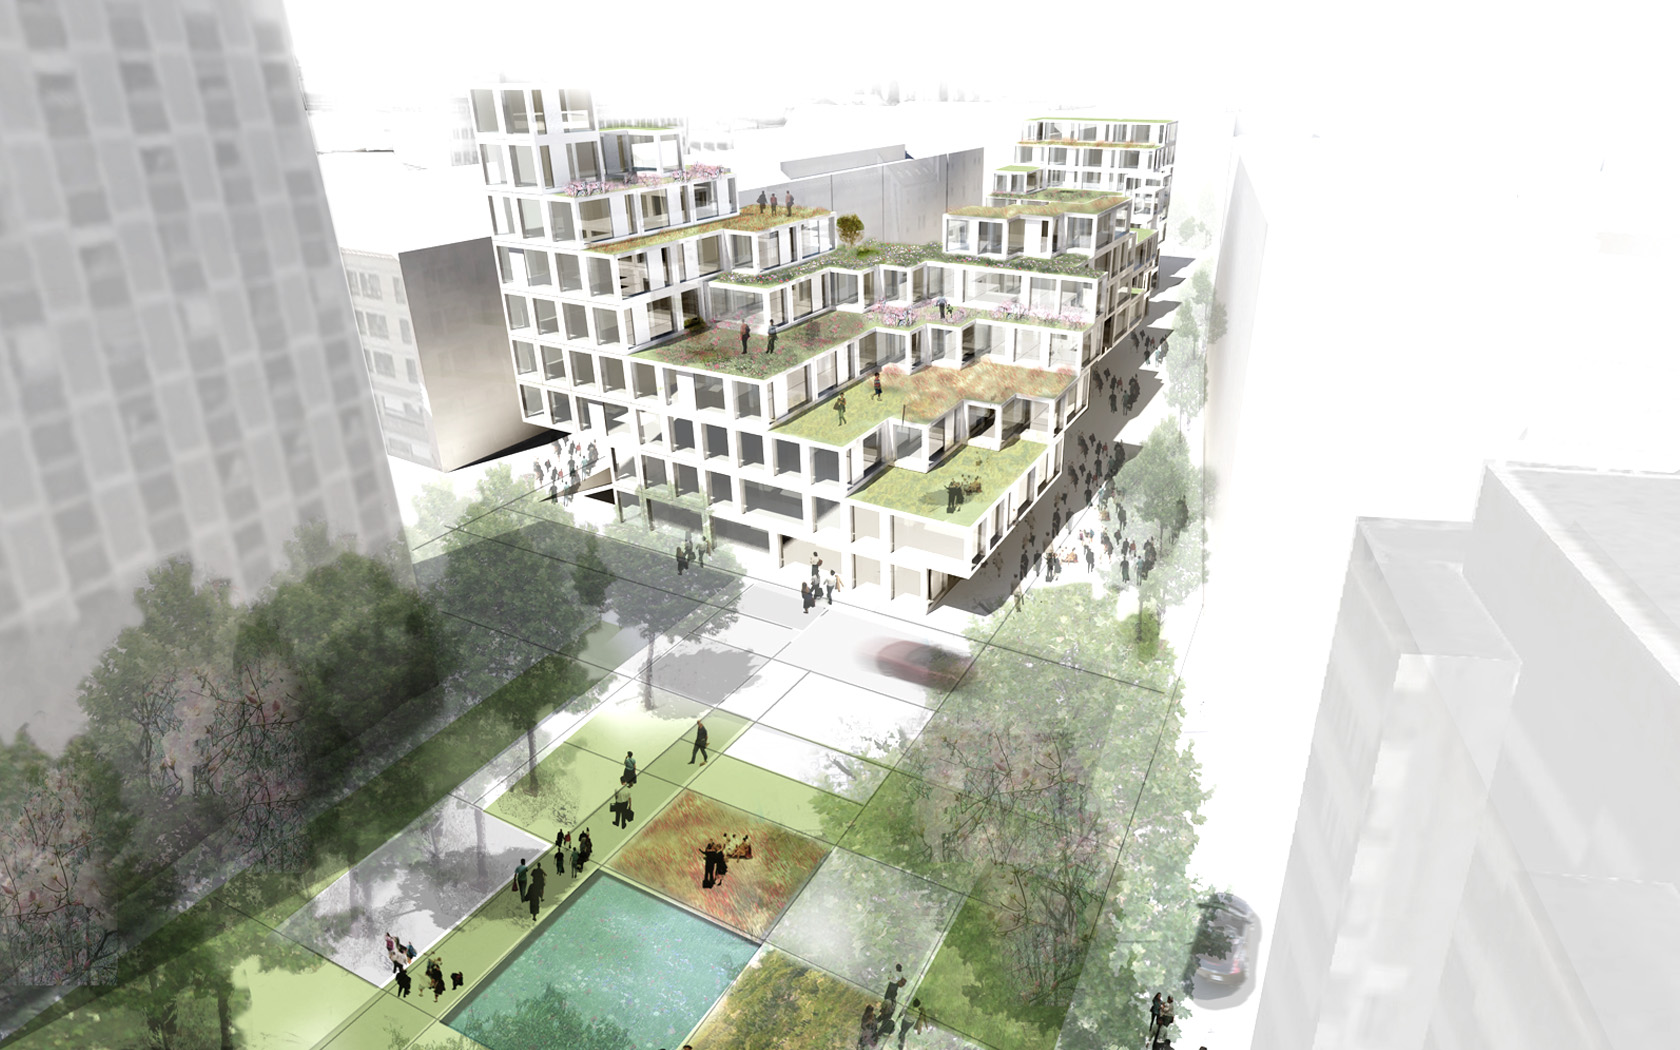 By using a small scale basic unit, turning complex inner city voids into spaces for development.